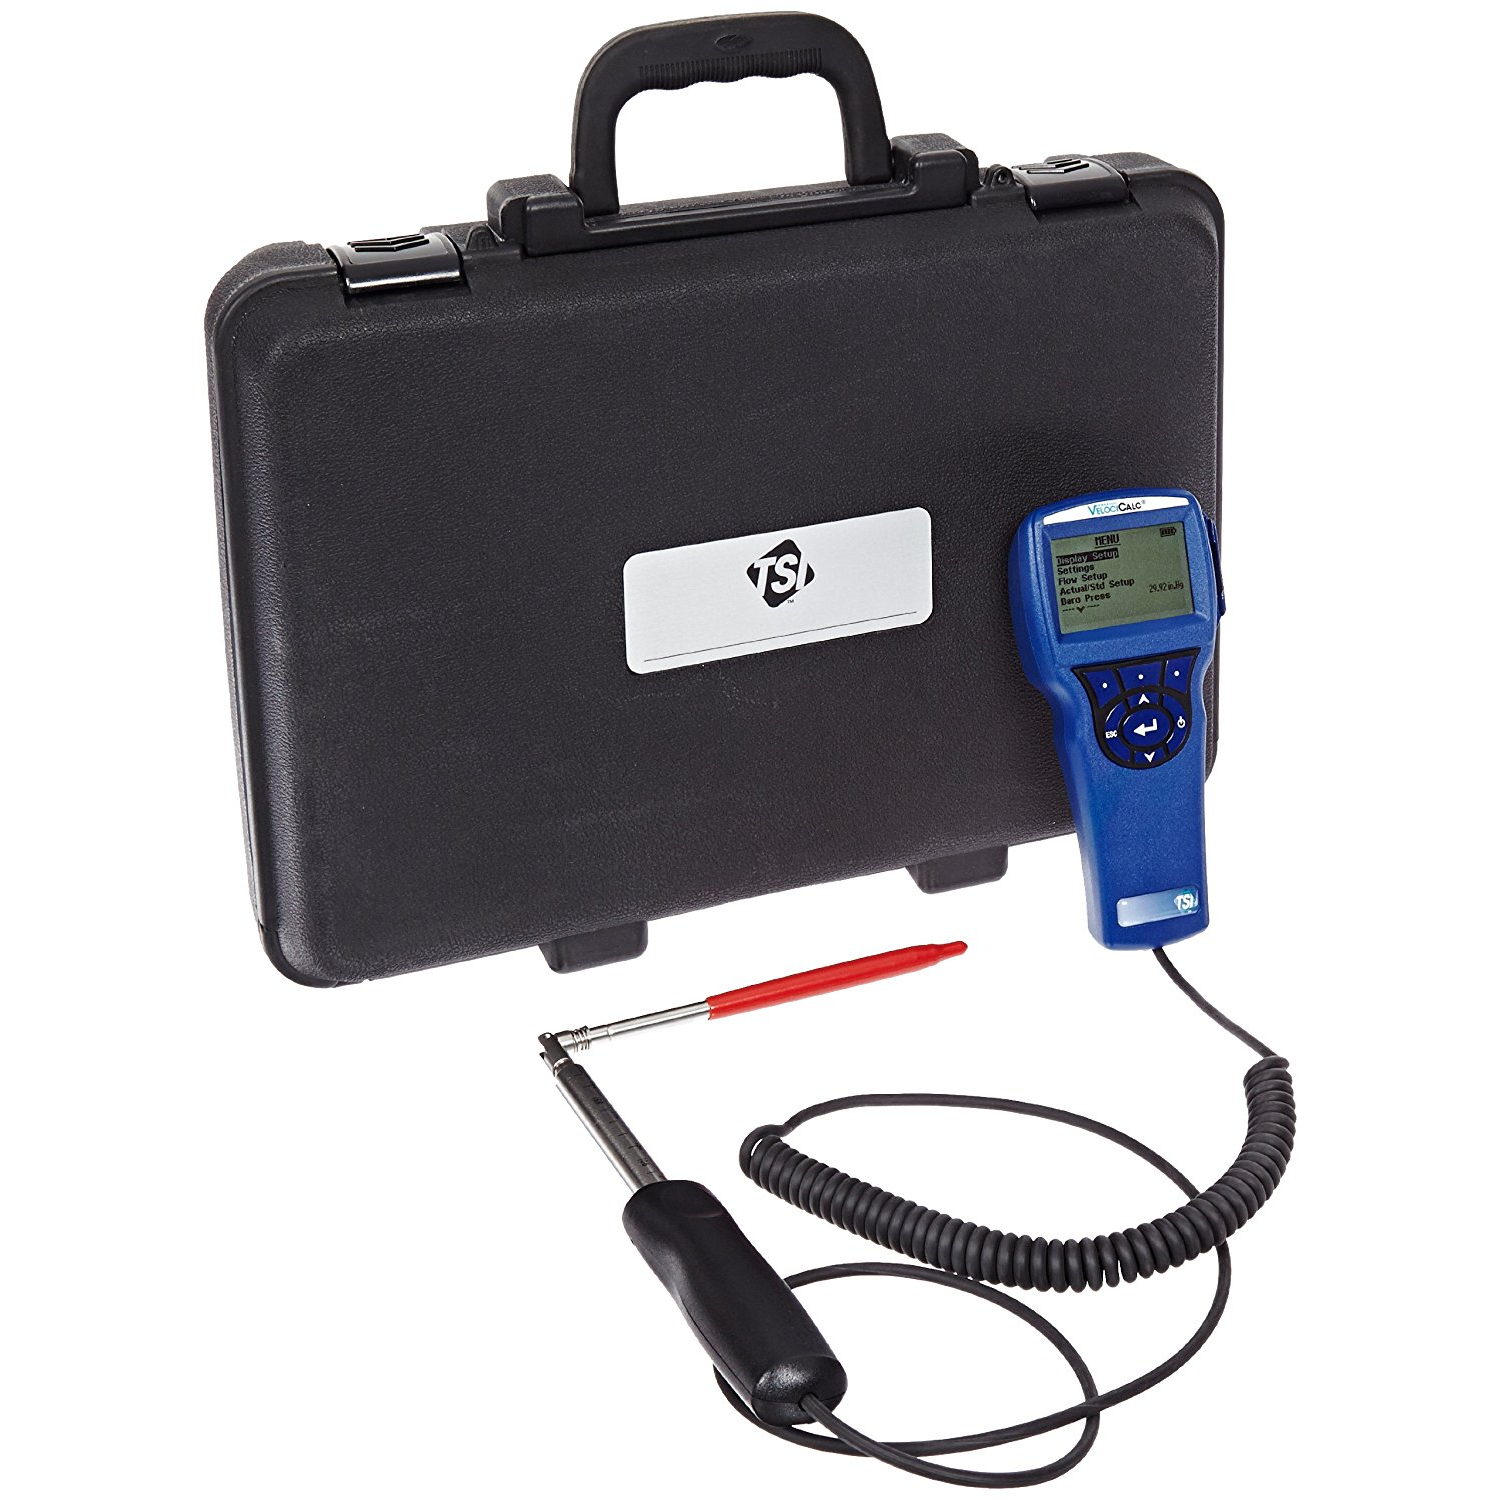 TSI 9545-A Velocicalc Digital Air Velocity Meter with Articulated Probe